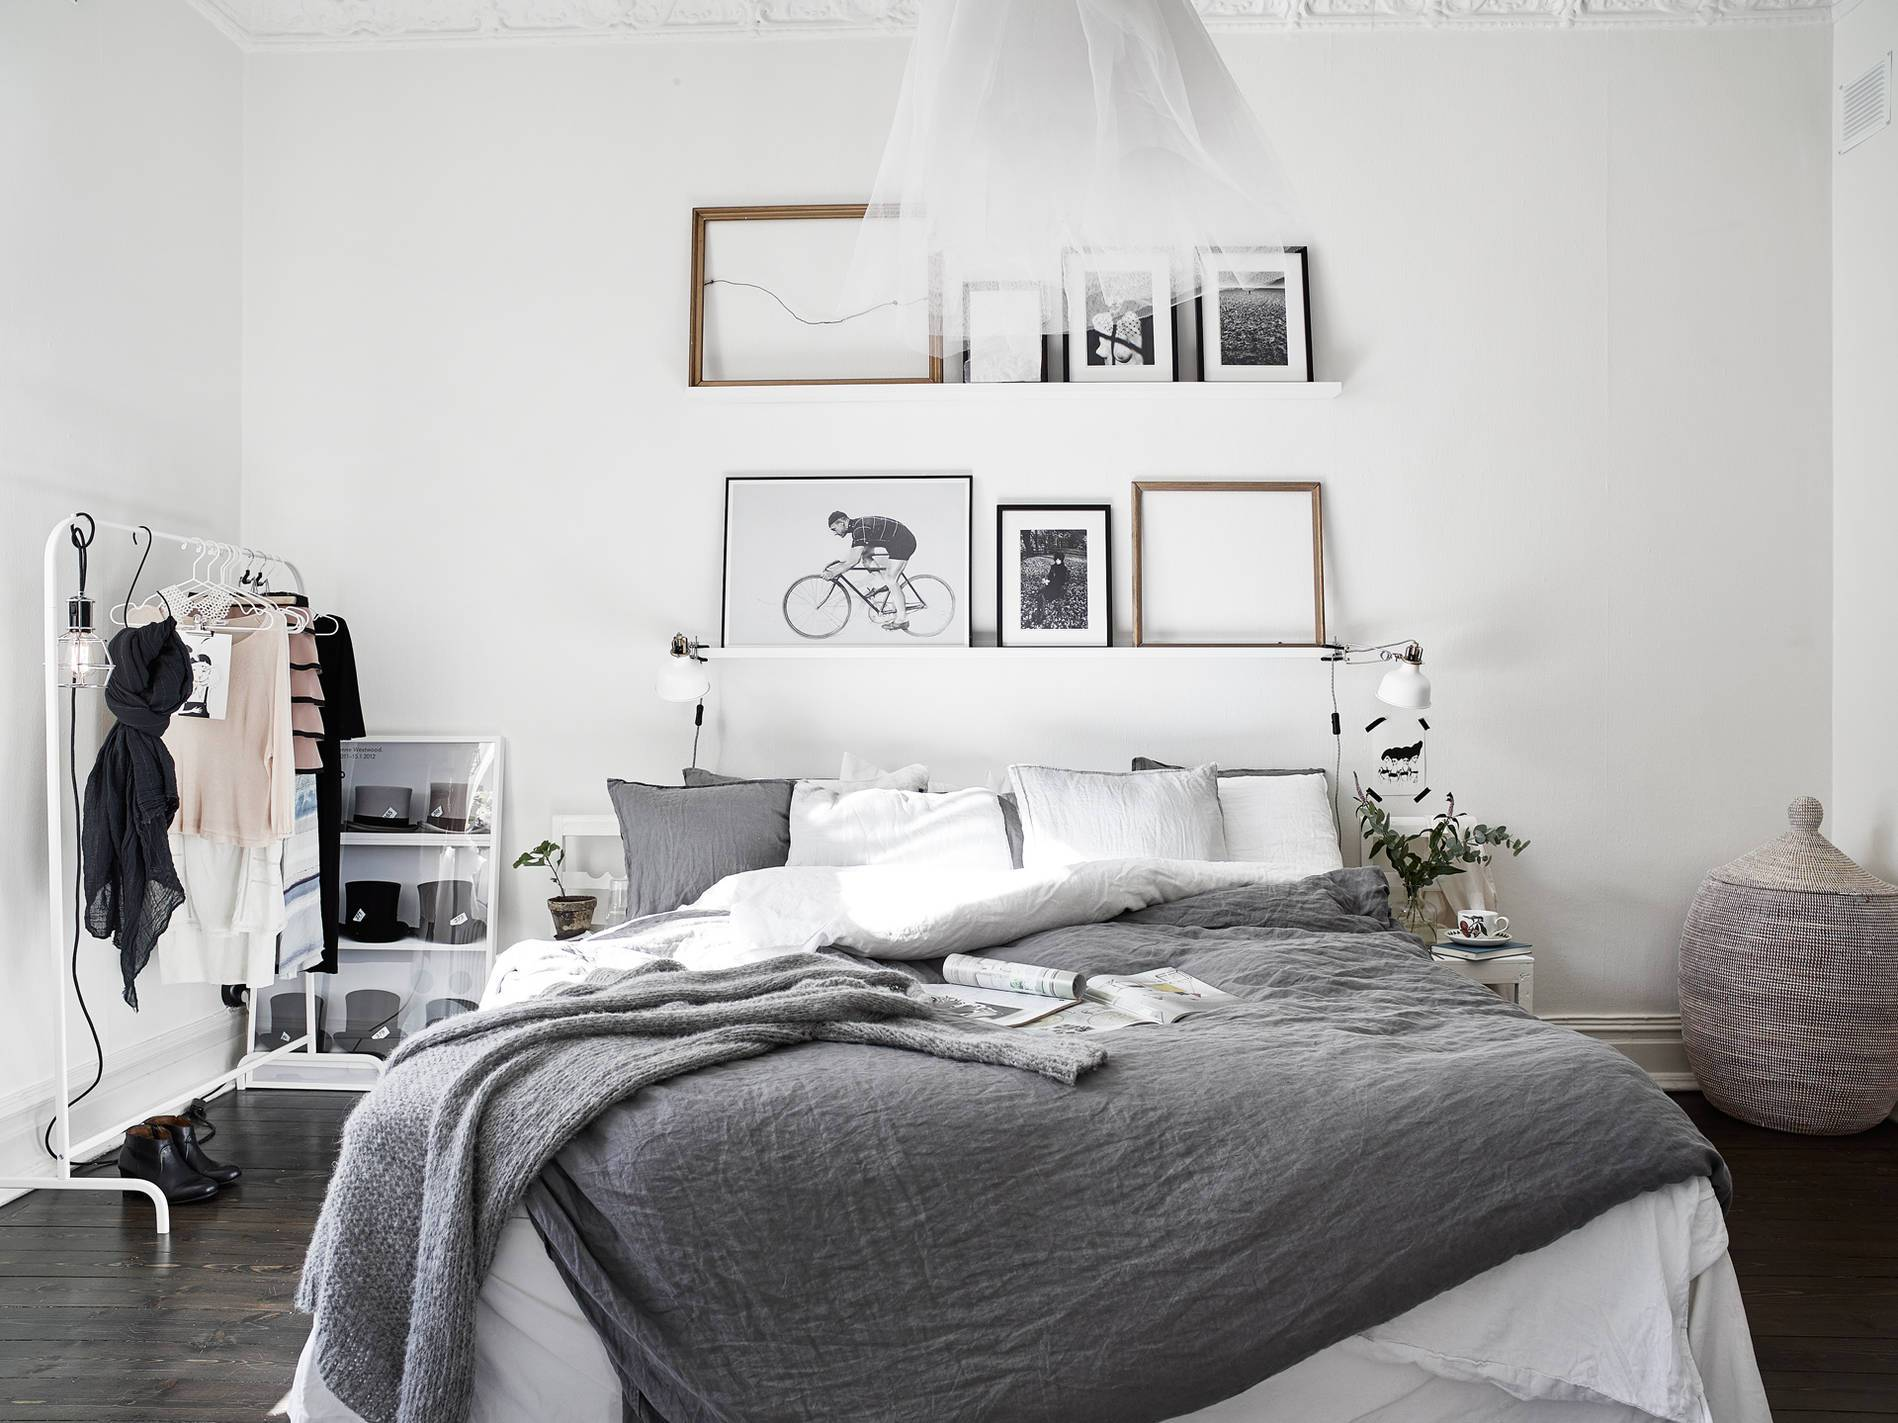 Slaapkamer Fabric 3 Ikea Essentials That Every Stylish Home Needs Bloglovin The